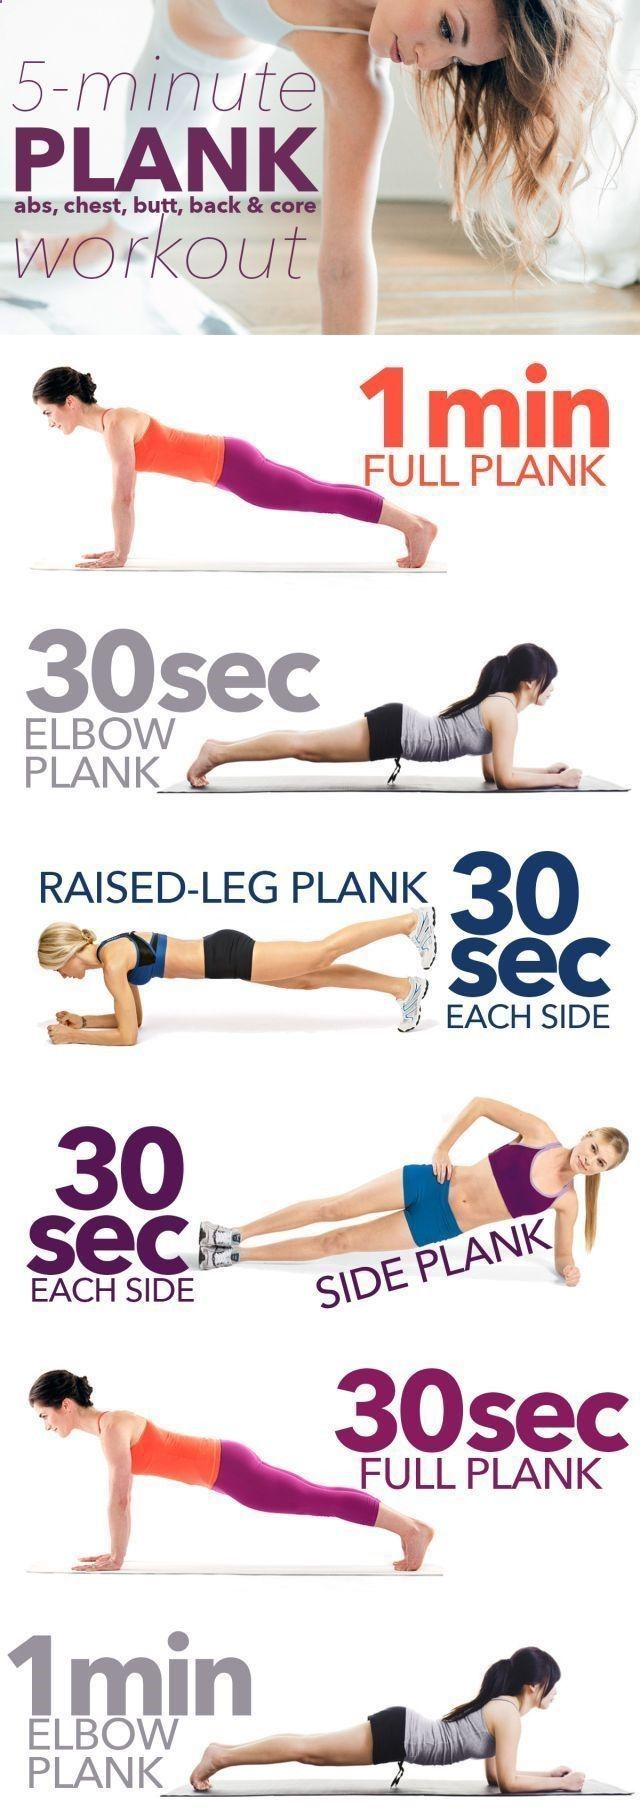 Yoga Workout - 9 Amazing Flat Belly Workouts To Help Sculpt Your Abs! Get your sexiest body ever without,crunches,cardio,or ever setting foot in a gym